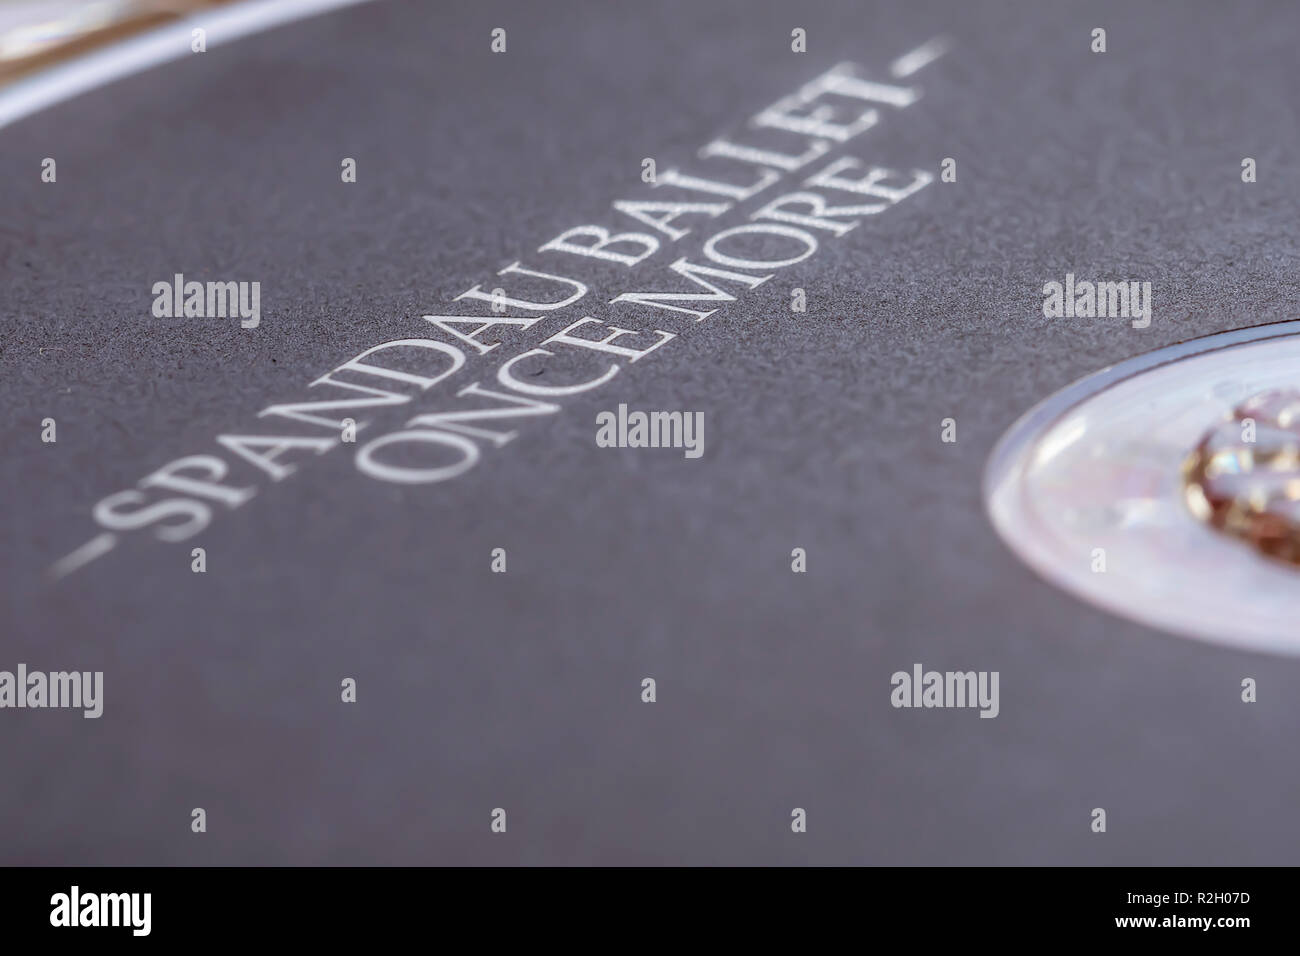 """Closeup of the top of a CD (compact disk), """"Once More"""" by Spandau Ballet. Music media compact disc. Stock Photo"""